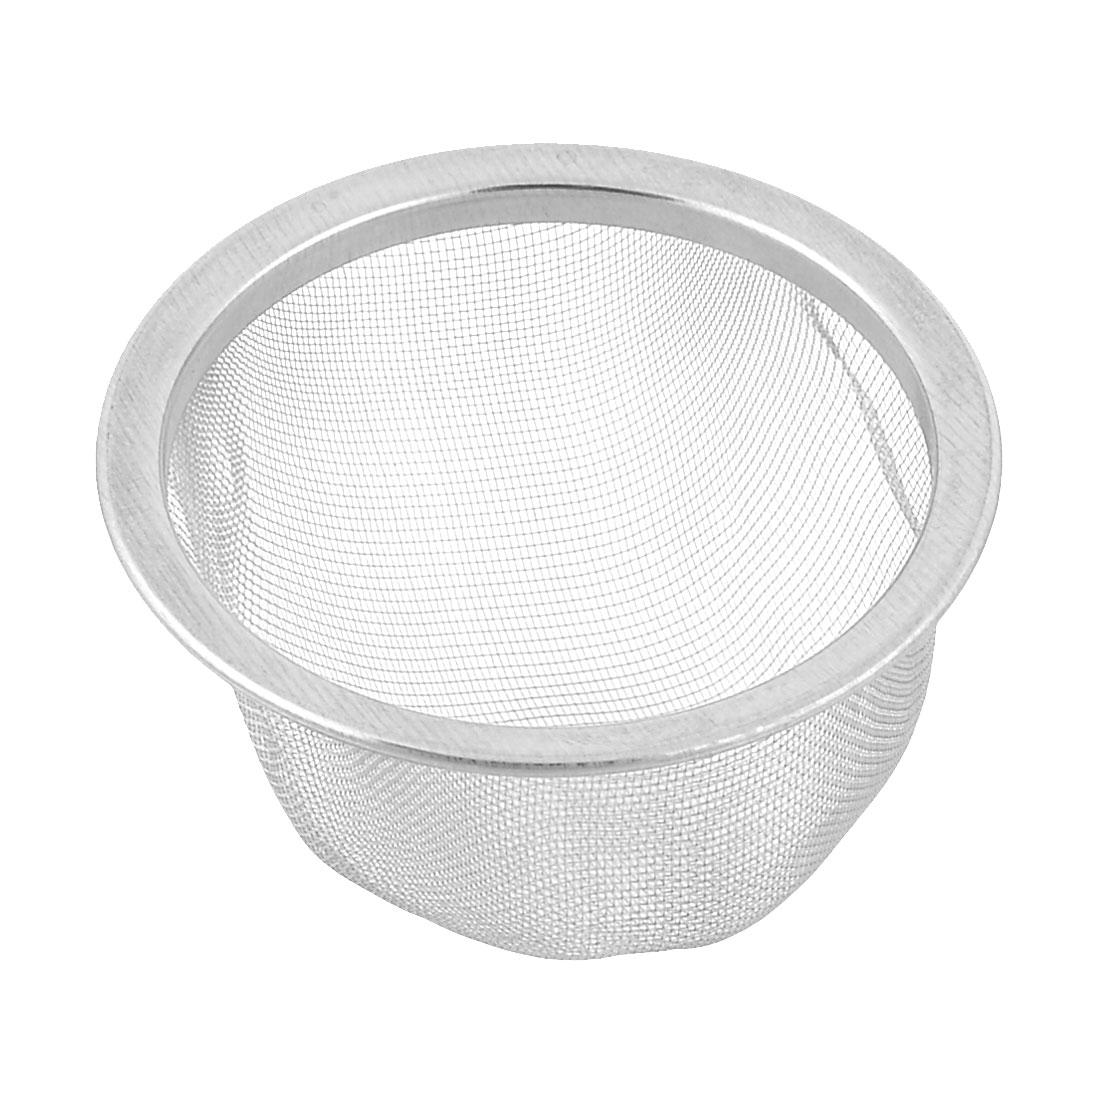 70mm Silver Tone Stainless Steel Wire Mesh Tea Leaves Spice Strainer